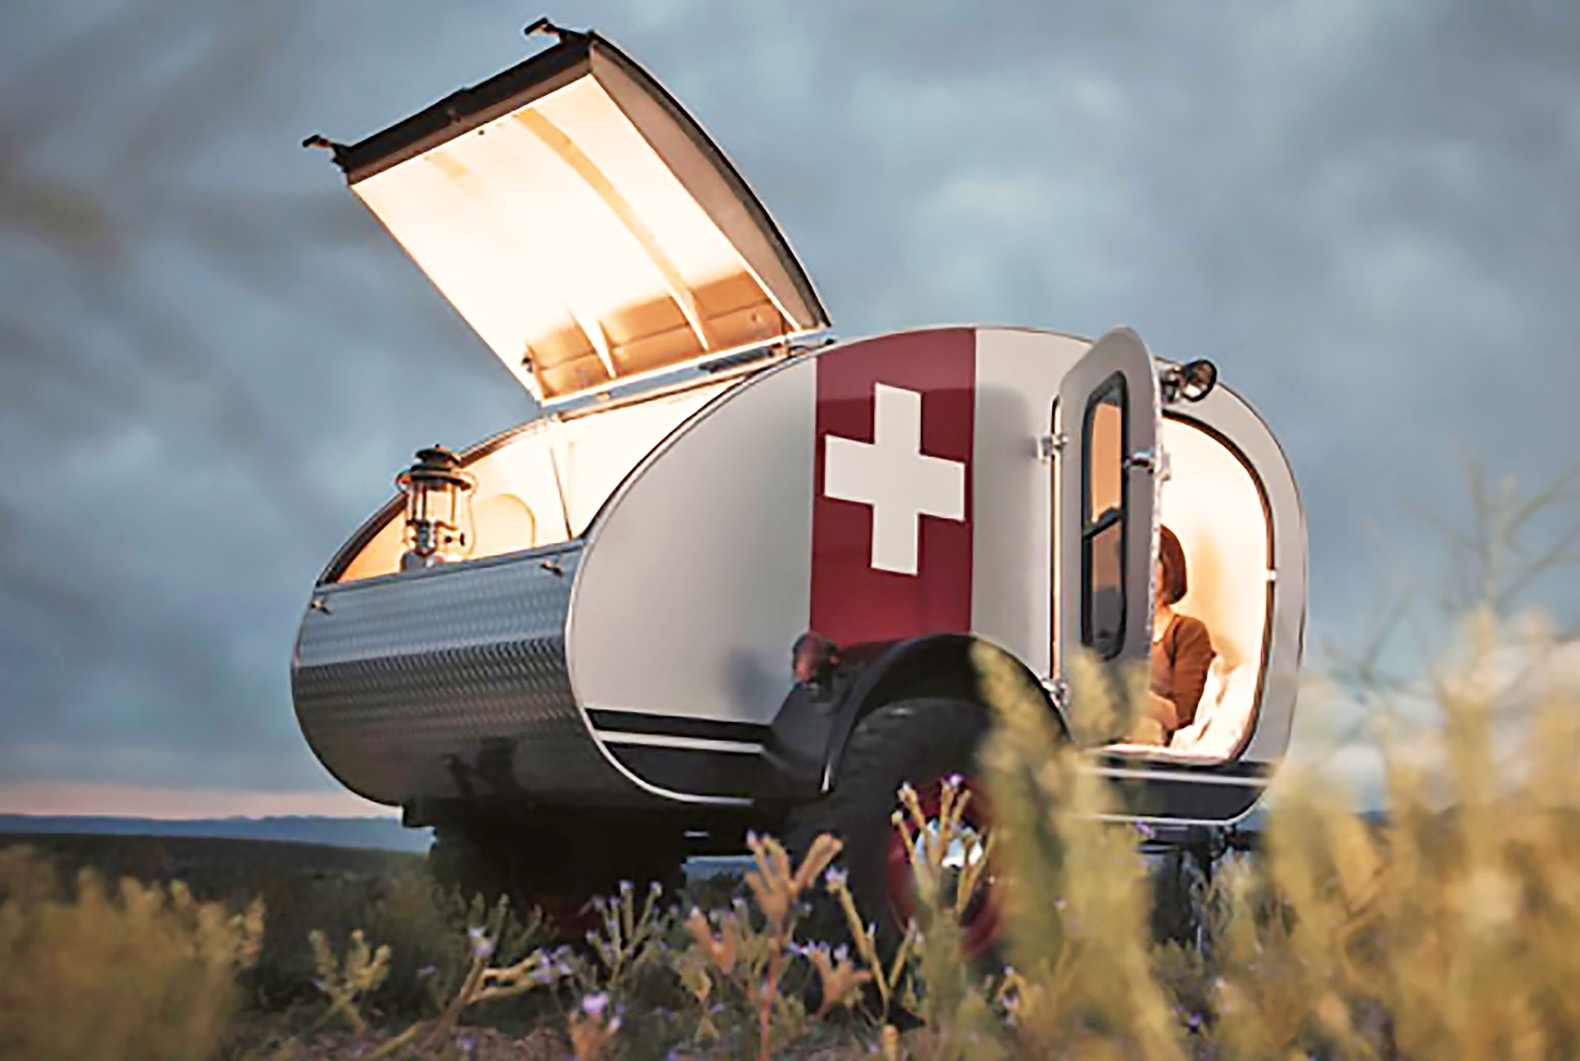 Modern Retro Camping Trailers - Solar powered vintage overland caravan is tough enough to go off road